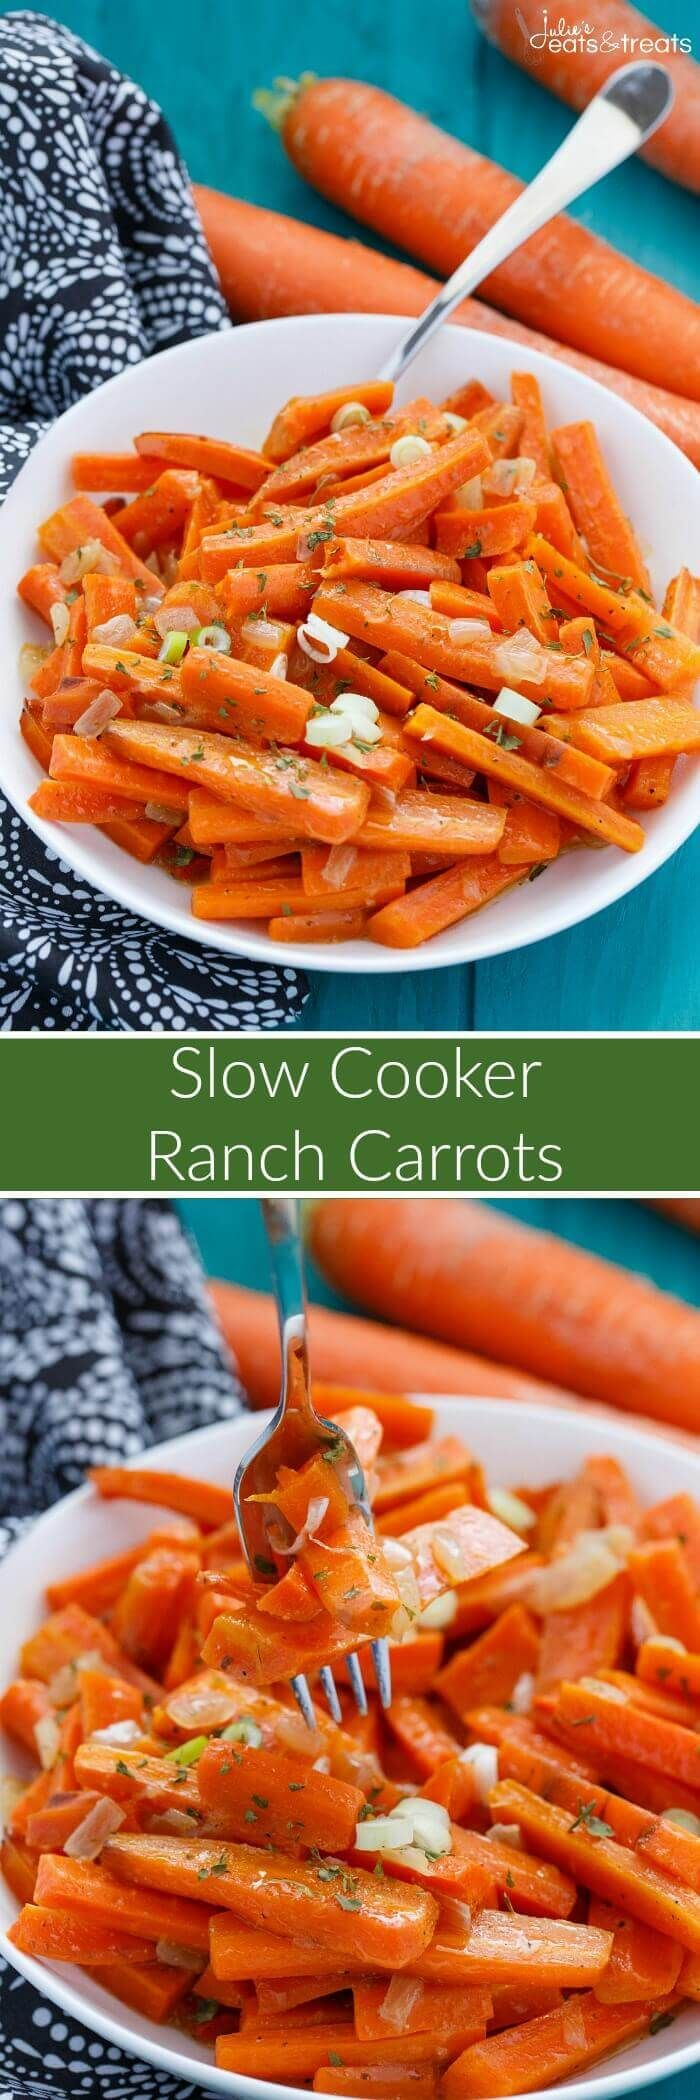 Ranch Crock Pot Carrots ~ Super Quick to Make for the Holidays in Your Slow Cooker when Oven Space is Limited!